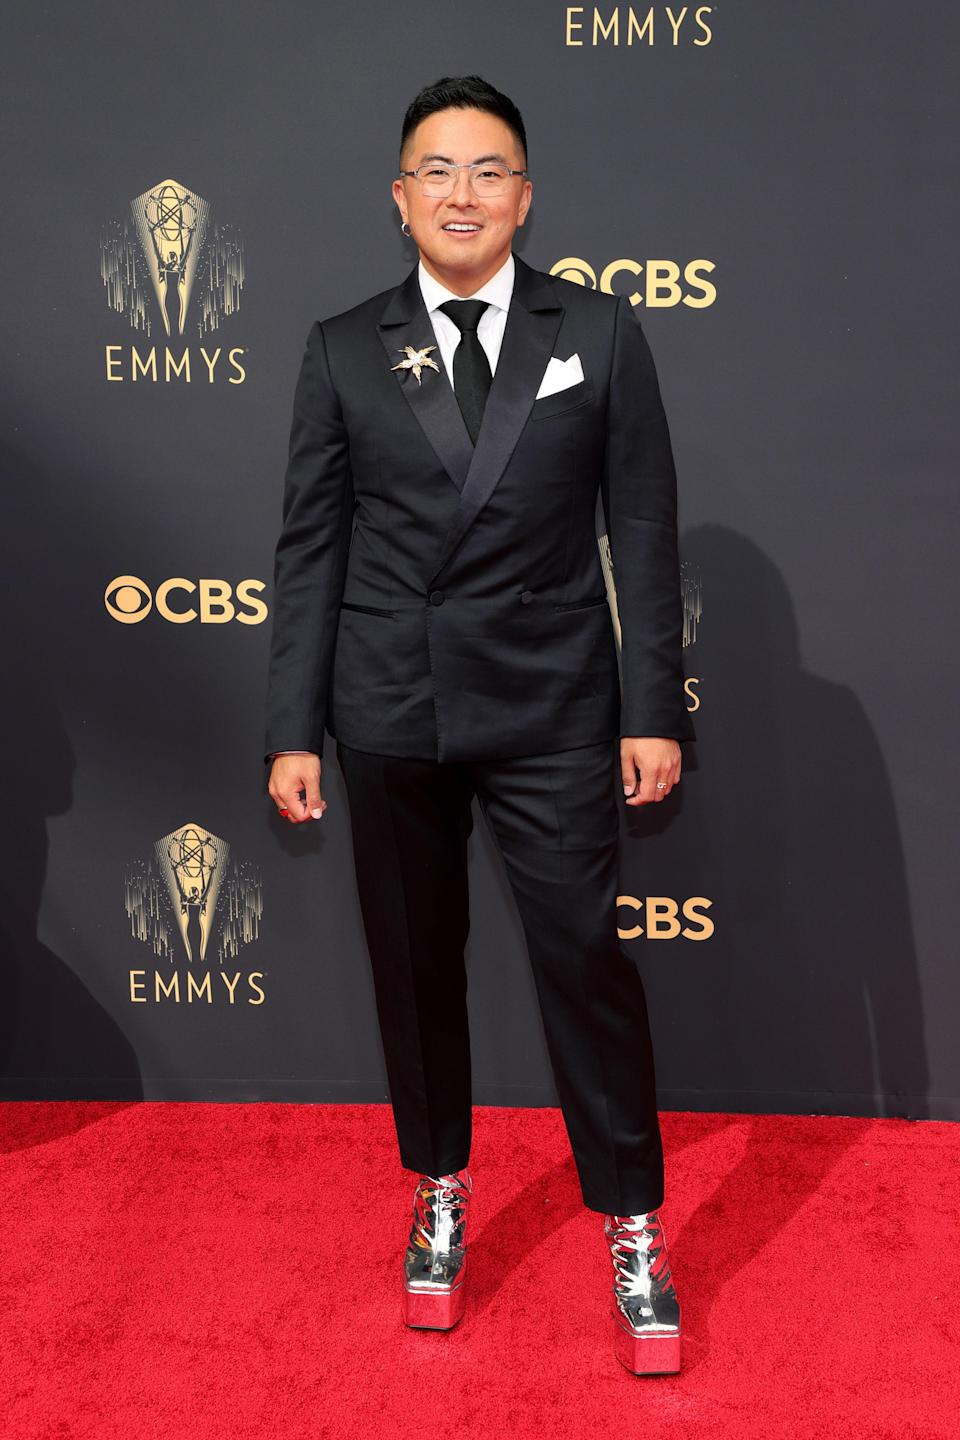 The <em>SNL</em> star went for the statement look in a black Zegna tux with cropped pants to show off his silver Syro platform boots. He added another touch of sparkle with a Tiffany brooch pinned to the tux jacket's lapel.